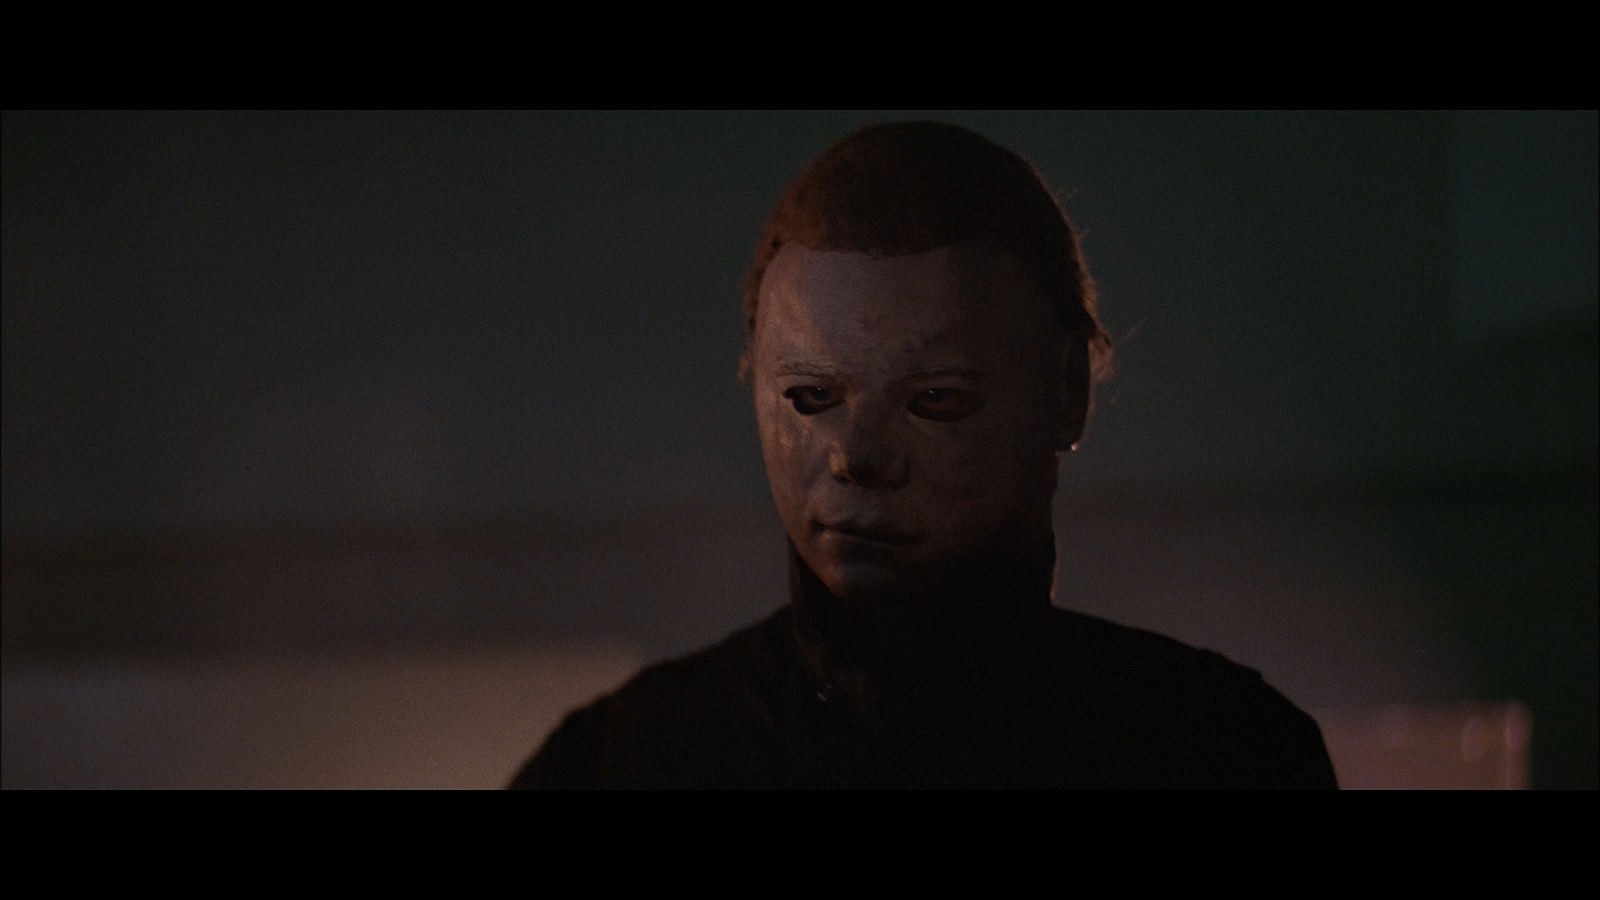 Michael Myers 1981 Images - Reverse Search